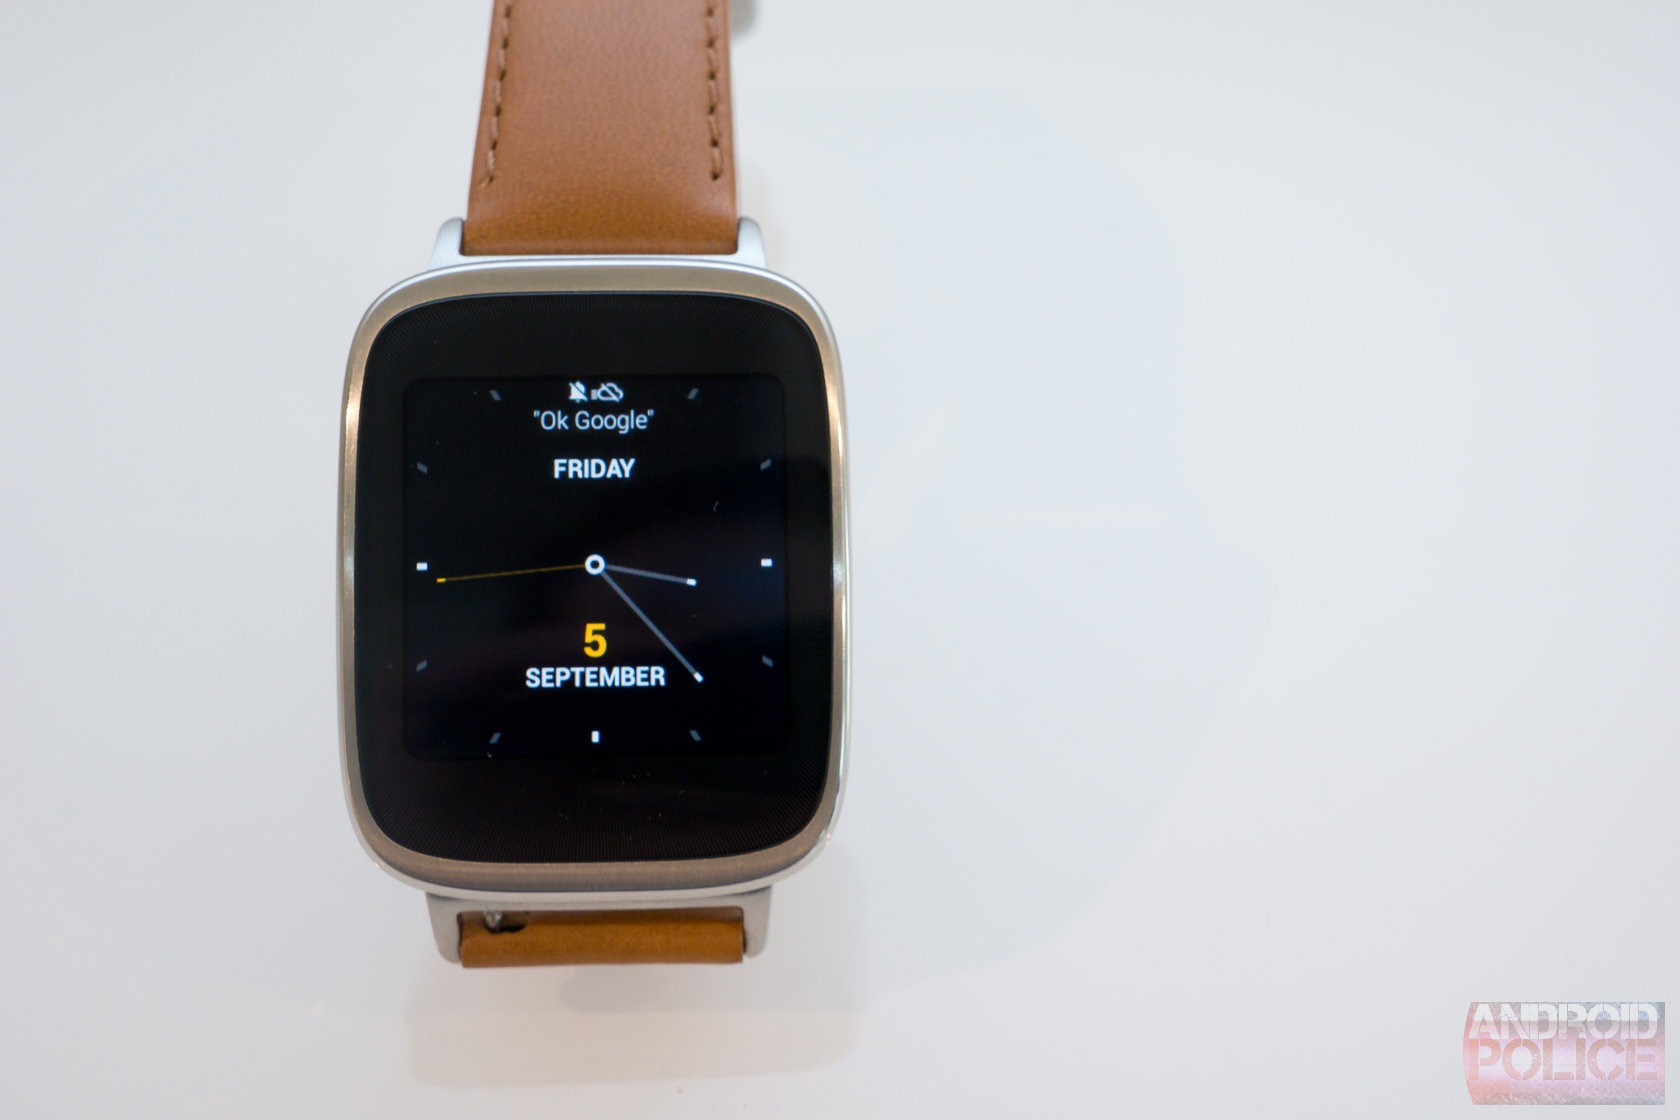 Hands On With The ASUS ZenWatch: The Best Square Android Wear Watch Yet